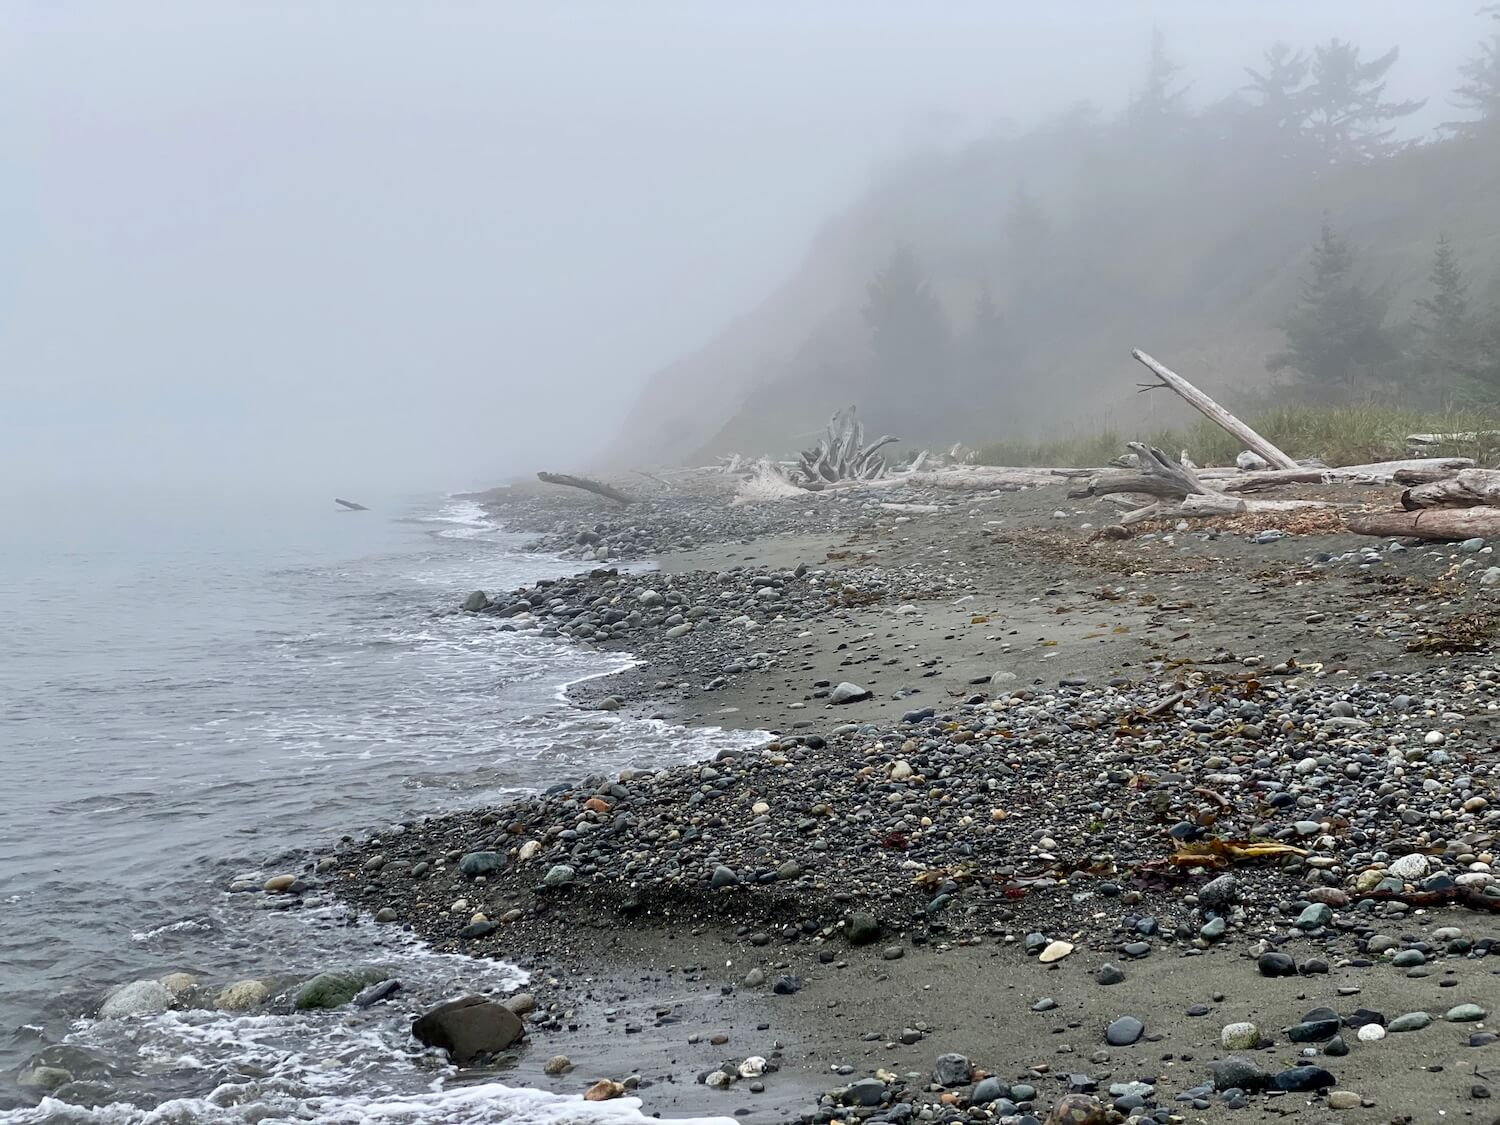 Exploring a misty beach is a great thing to do on Whidbey Island. The fog rises above fir trees in the background where we can barely make out the contour of the land. In the foreground waves lap up onto the rocks of the beach, while drift logs stagger in the background.